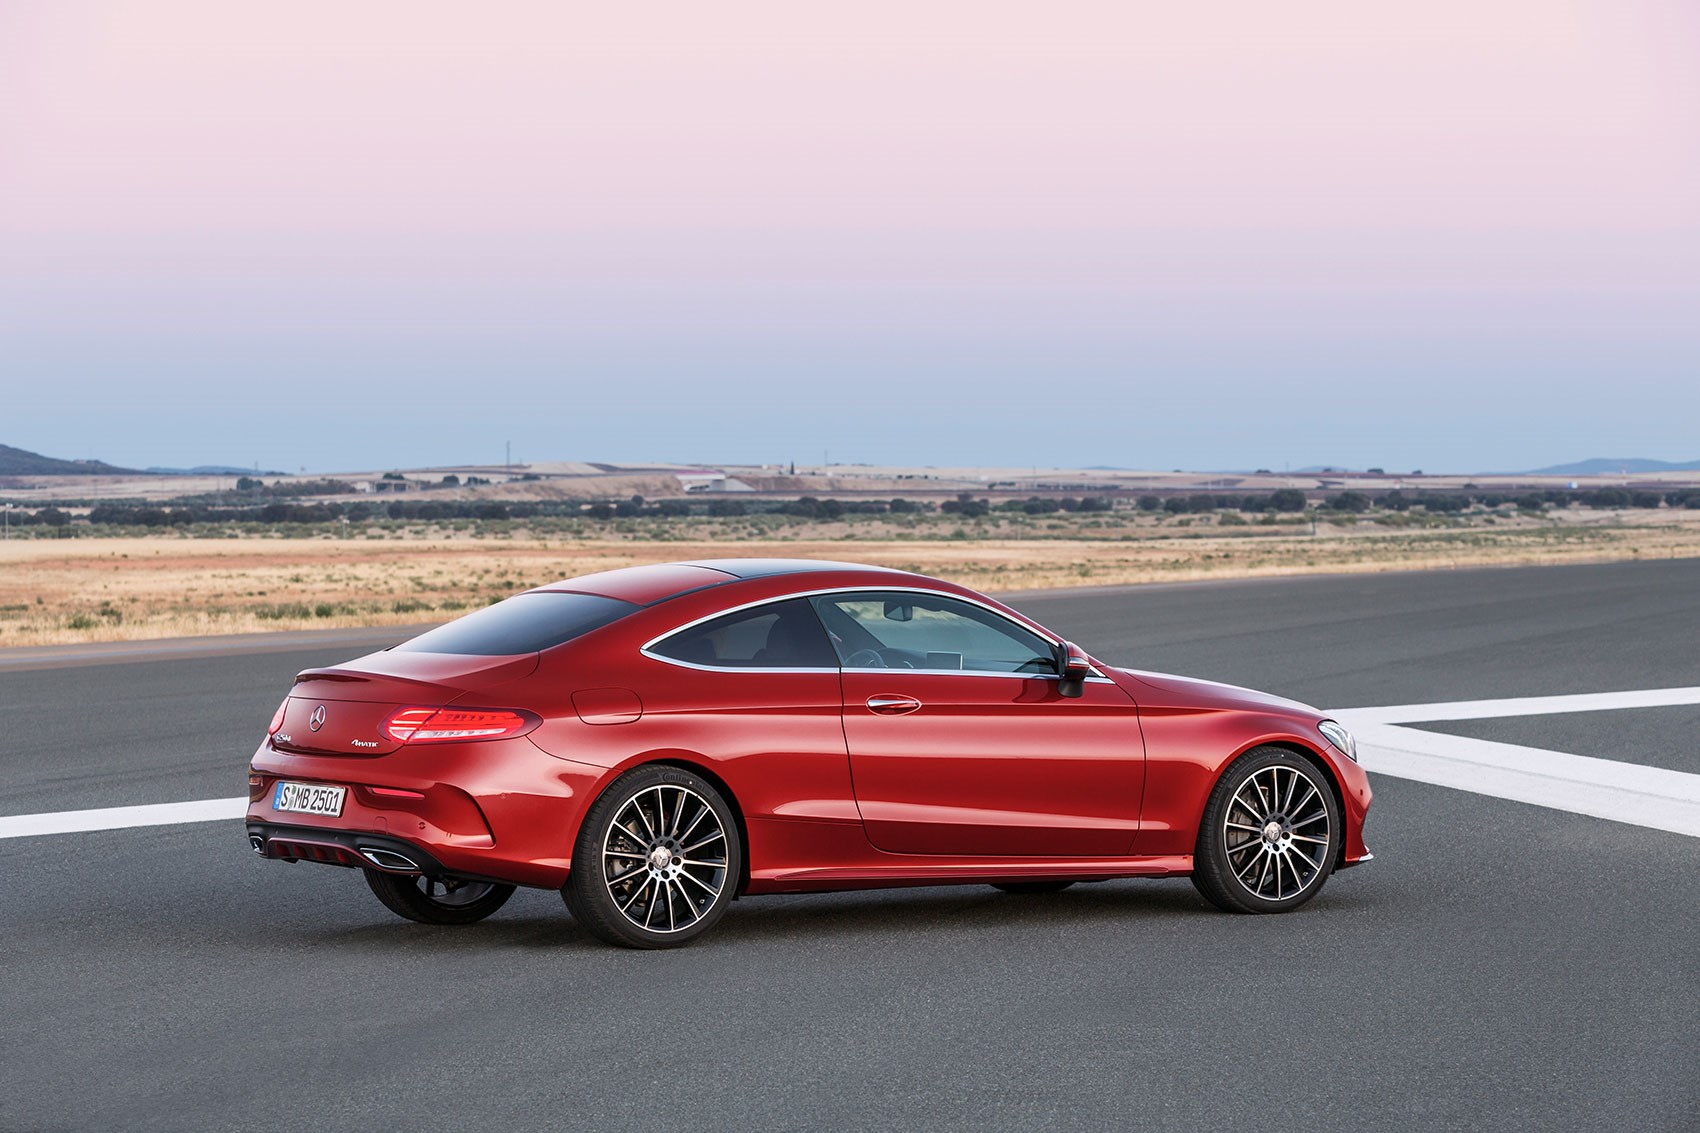 Mercedes Says Its New C Cl Coupe Is Lighter Than Predecessor